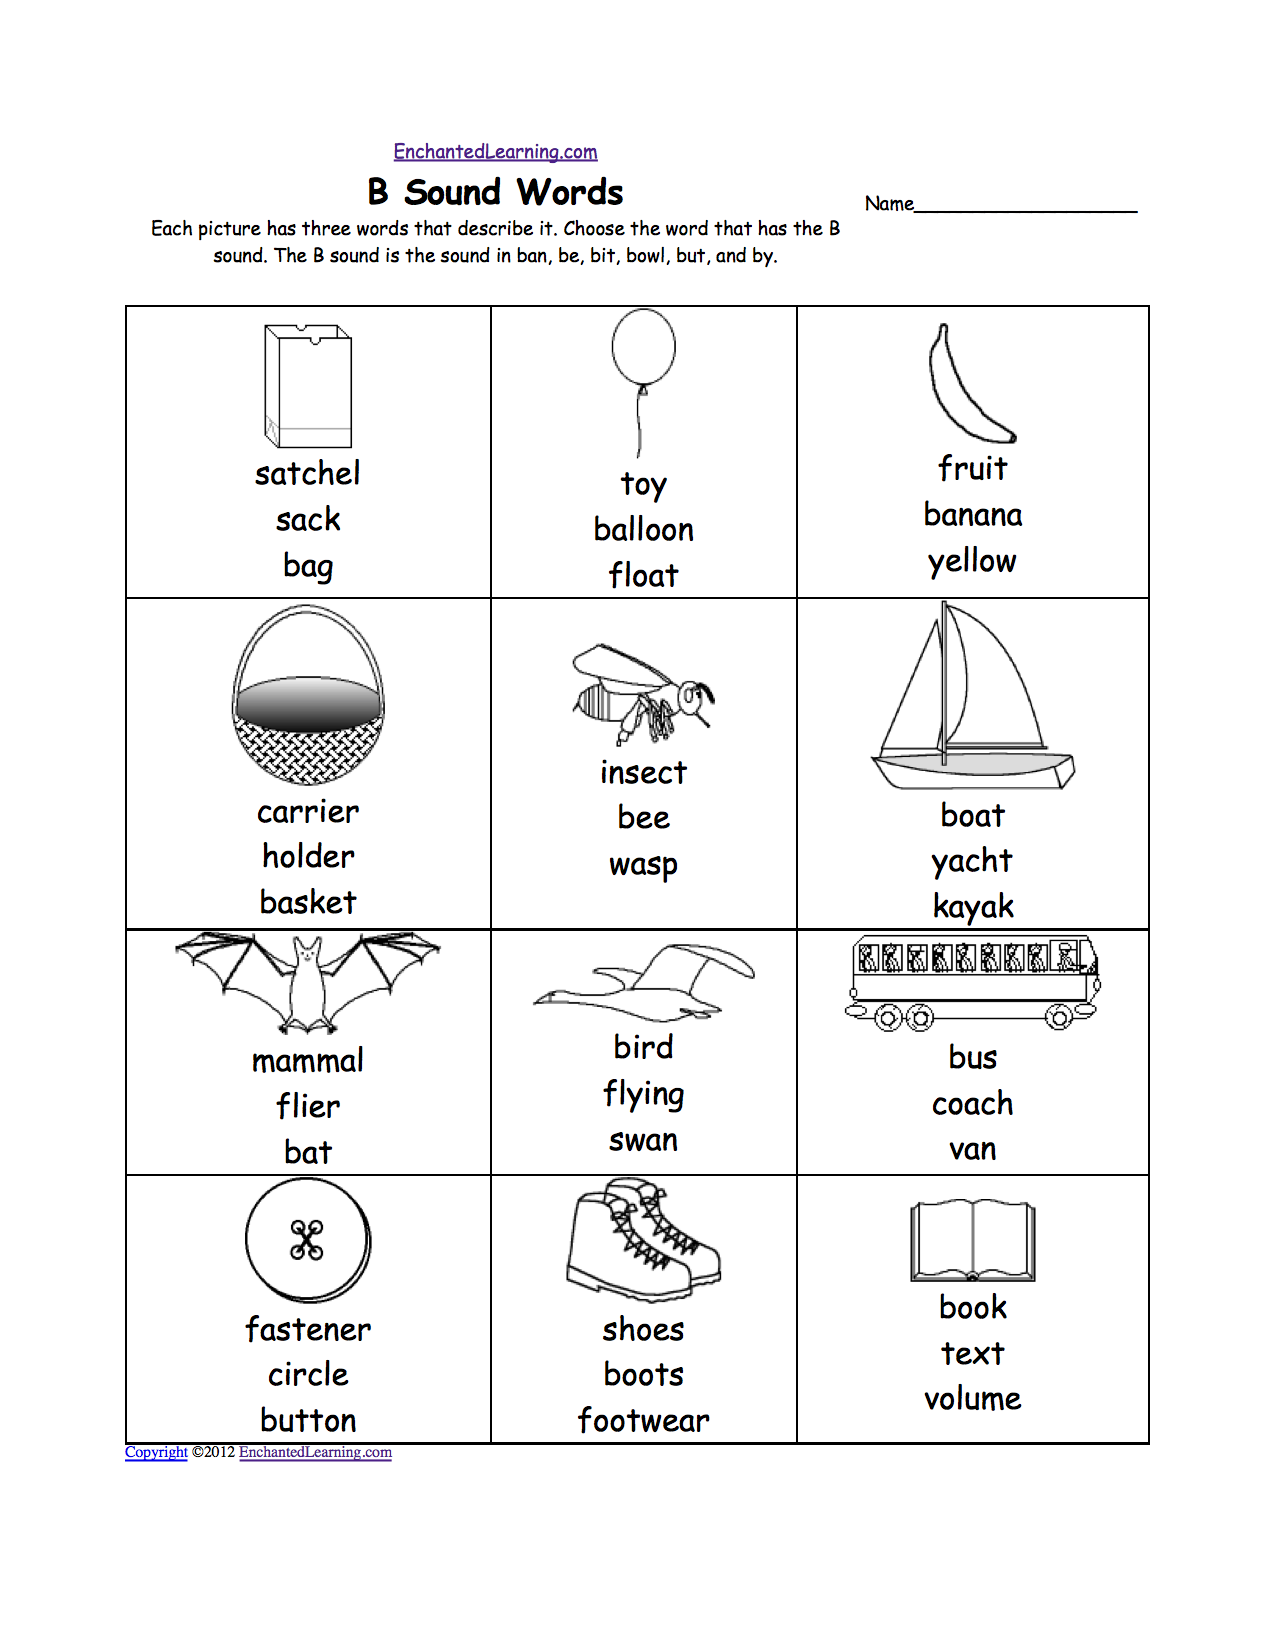 Worksheets Letter Sound Worksheets letter b alphabet activities at enchantedlearning com br sound phonics worksheet multiple choice each picture has three words that describe it choose the word a sound